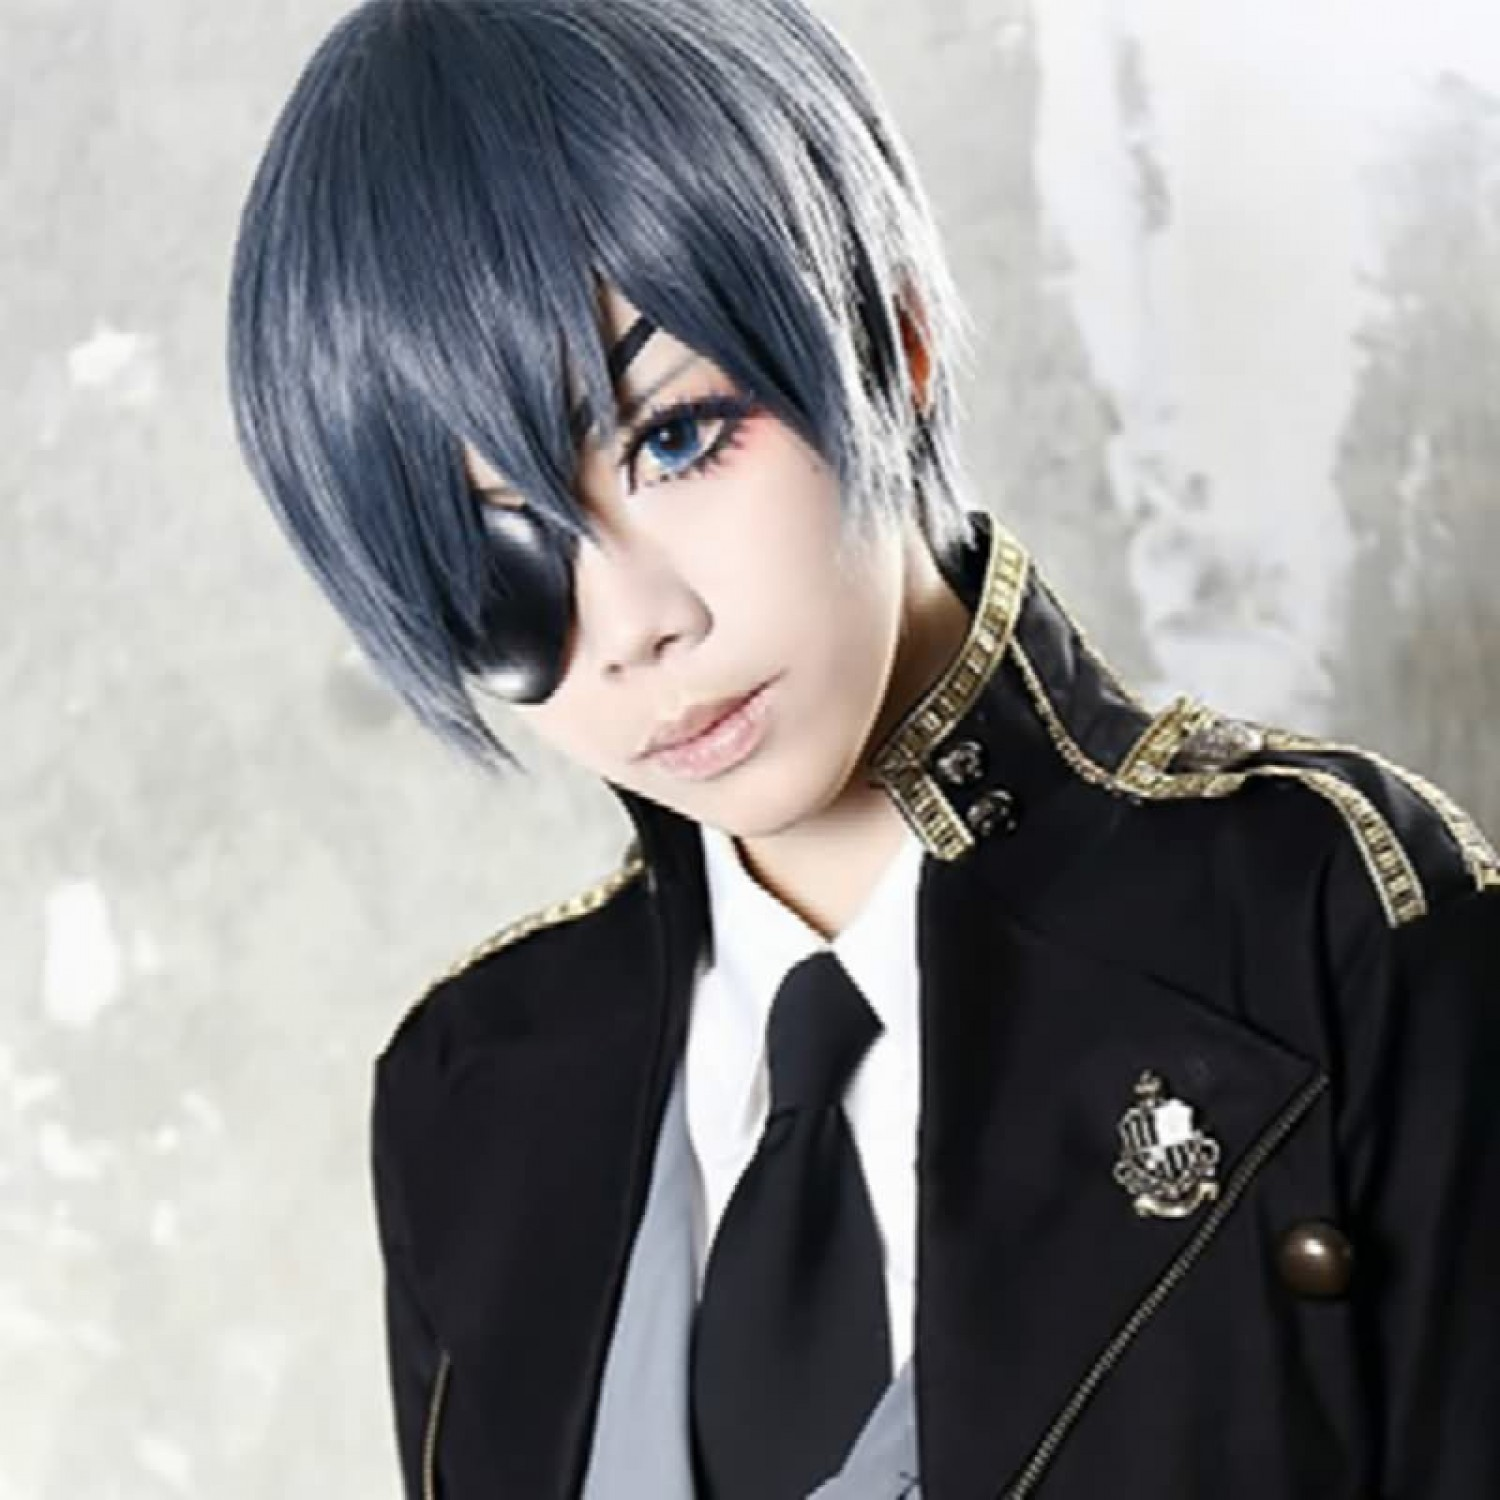 Black Butler Ciel Anime Phantomhive Short Dark Blue Mixed Grey Cosplay Men/'s Wig